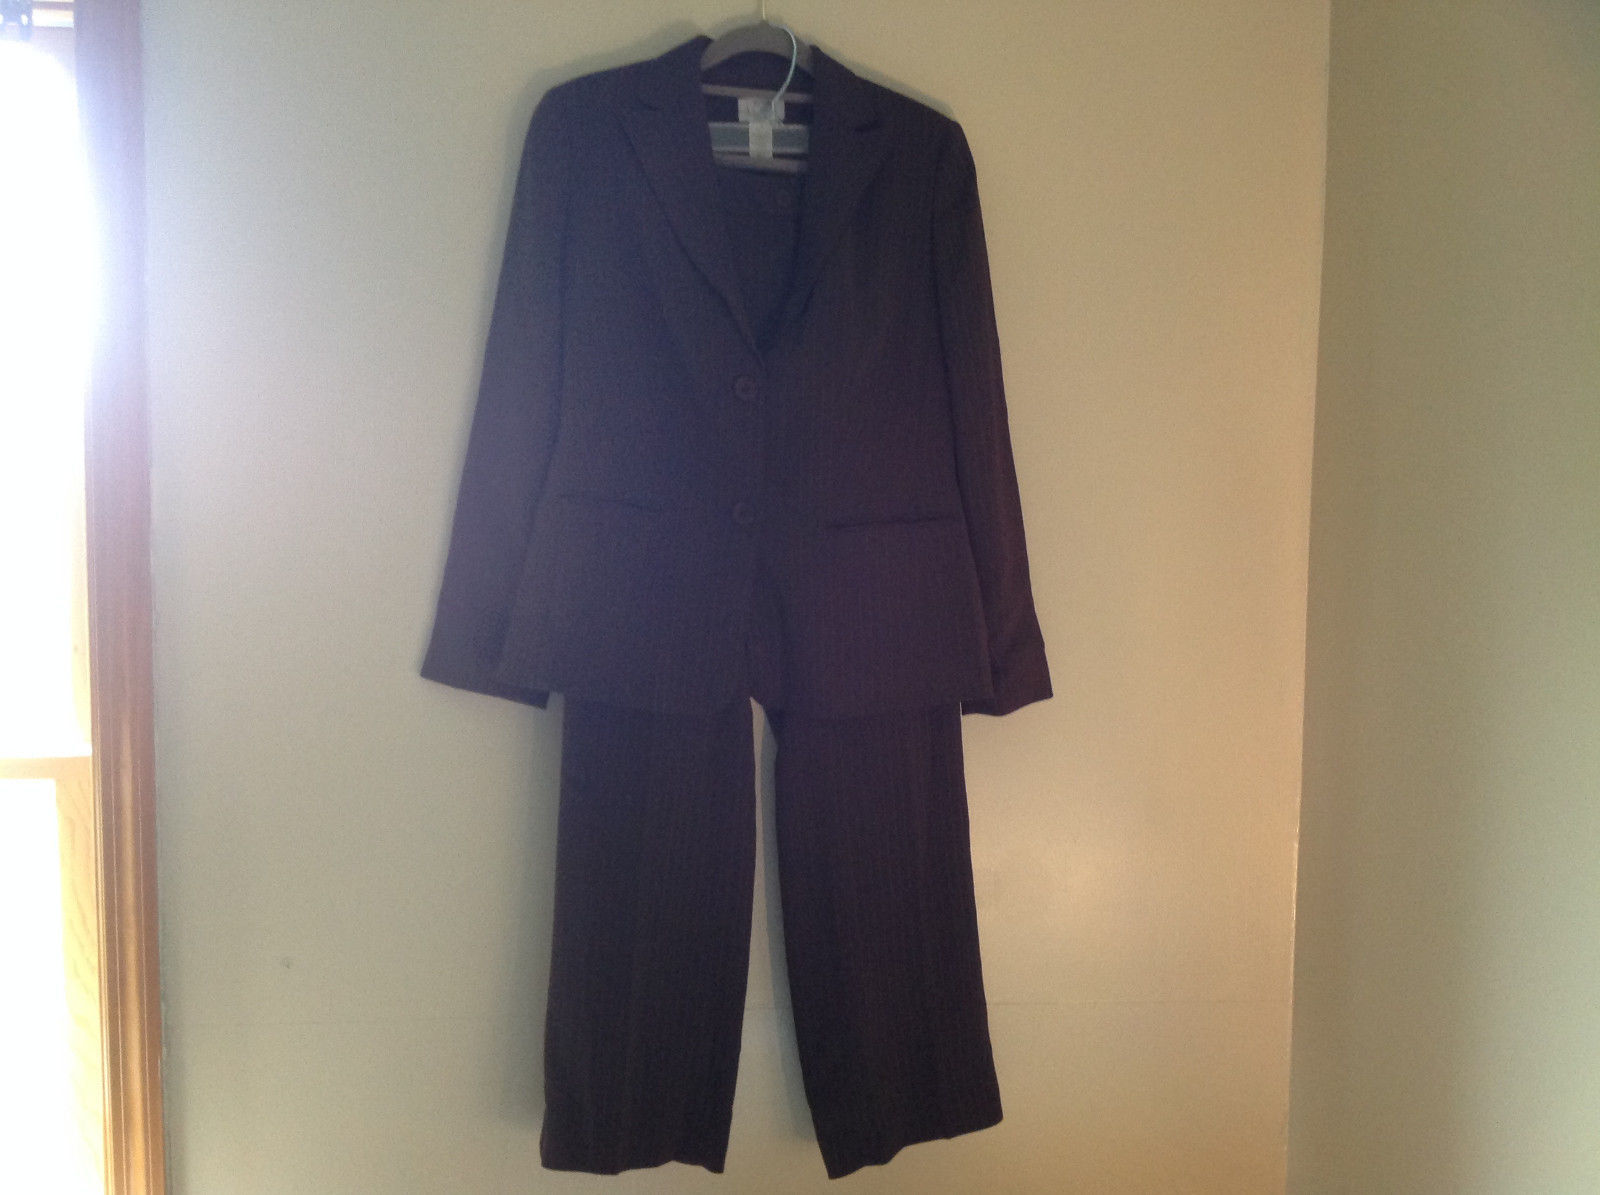 Elegant Matching Brown Pin Striped Pant Suit by Ann Taylor Loft Size 2 Petite